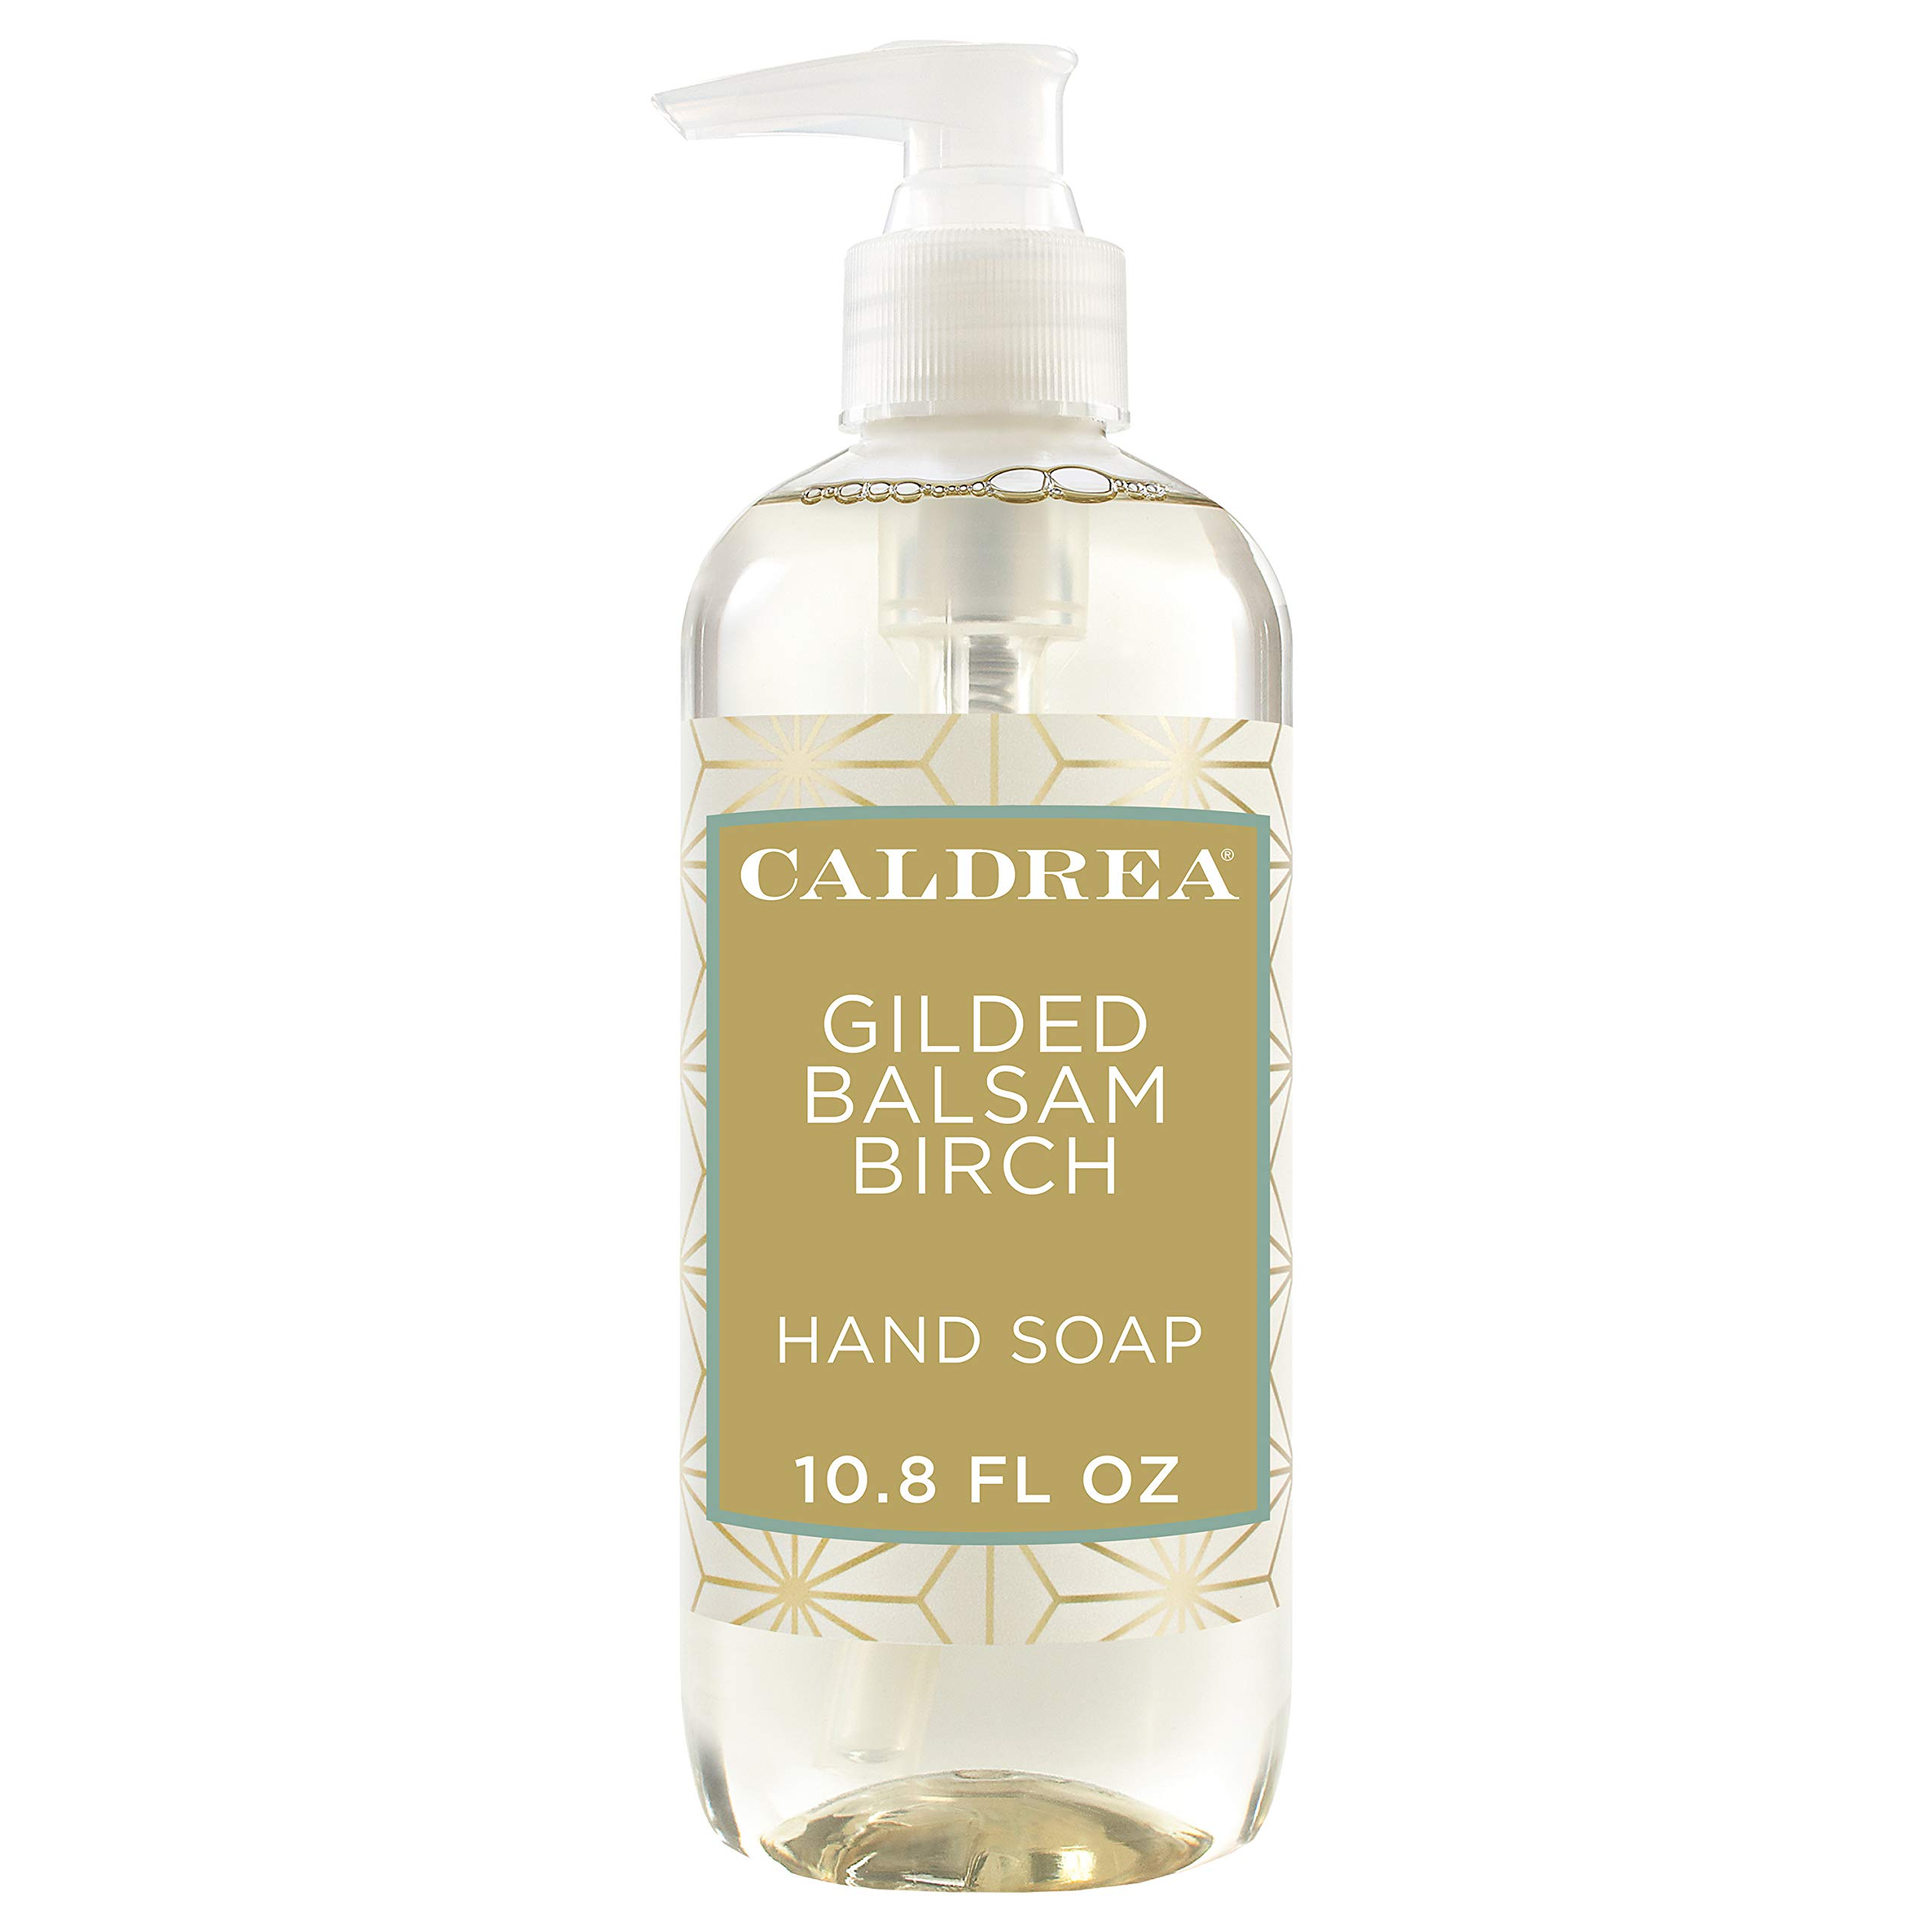 Caldrea Hand Wash Soap, Aloe Vera Gel, Olive Oil and Essential Oils to Cleanse and Condition, Gilded Balsam Birch Scent, 10.8 oz